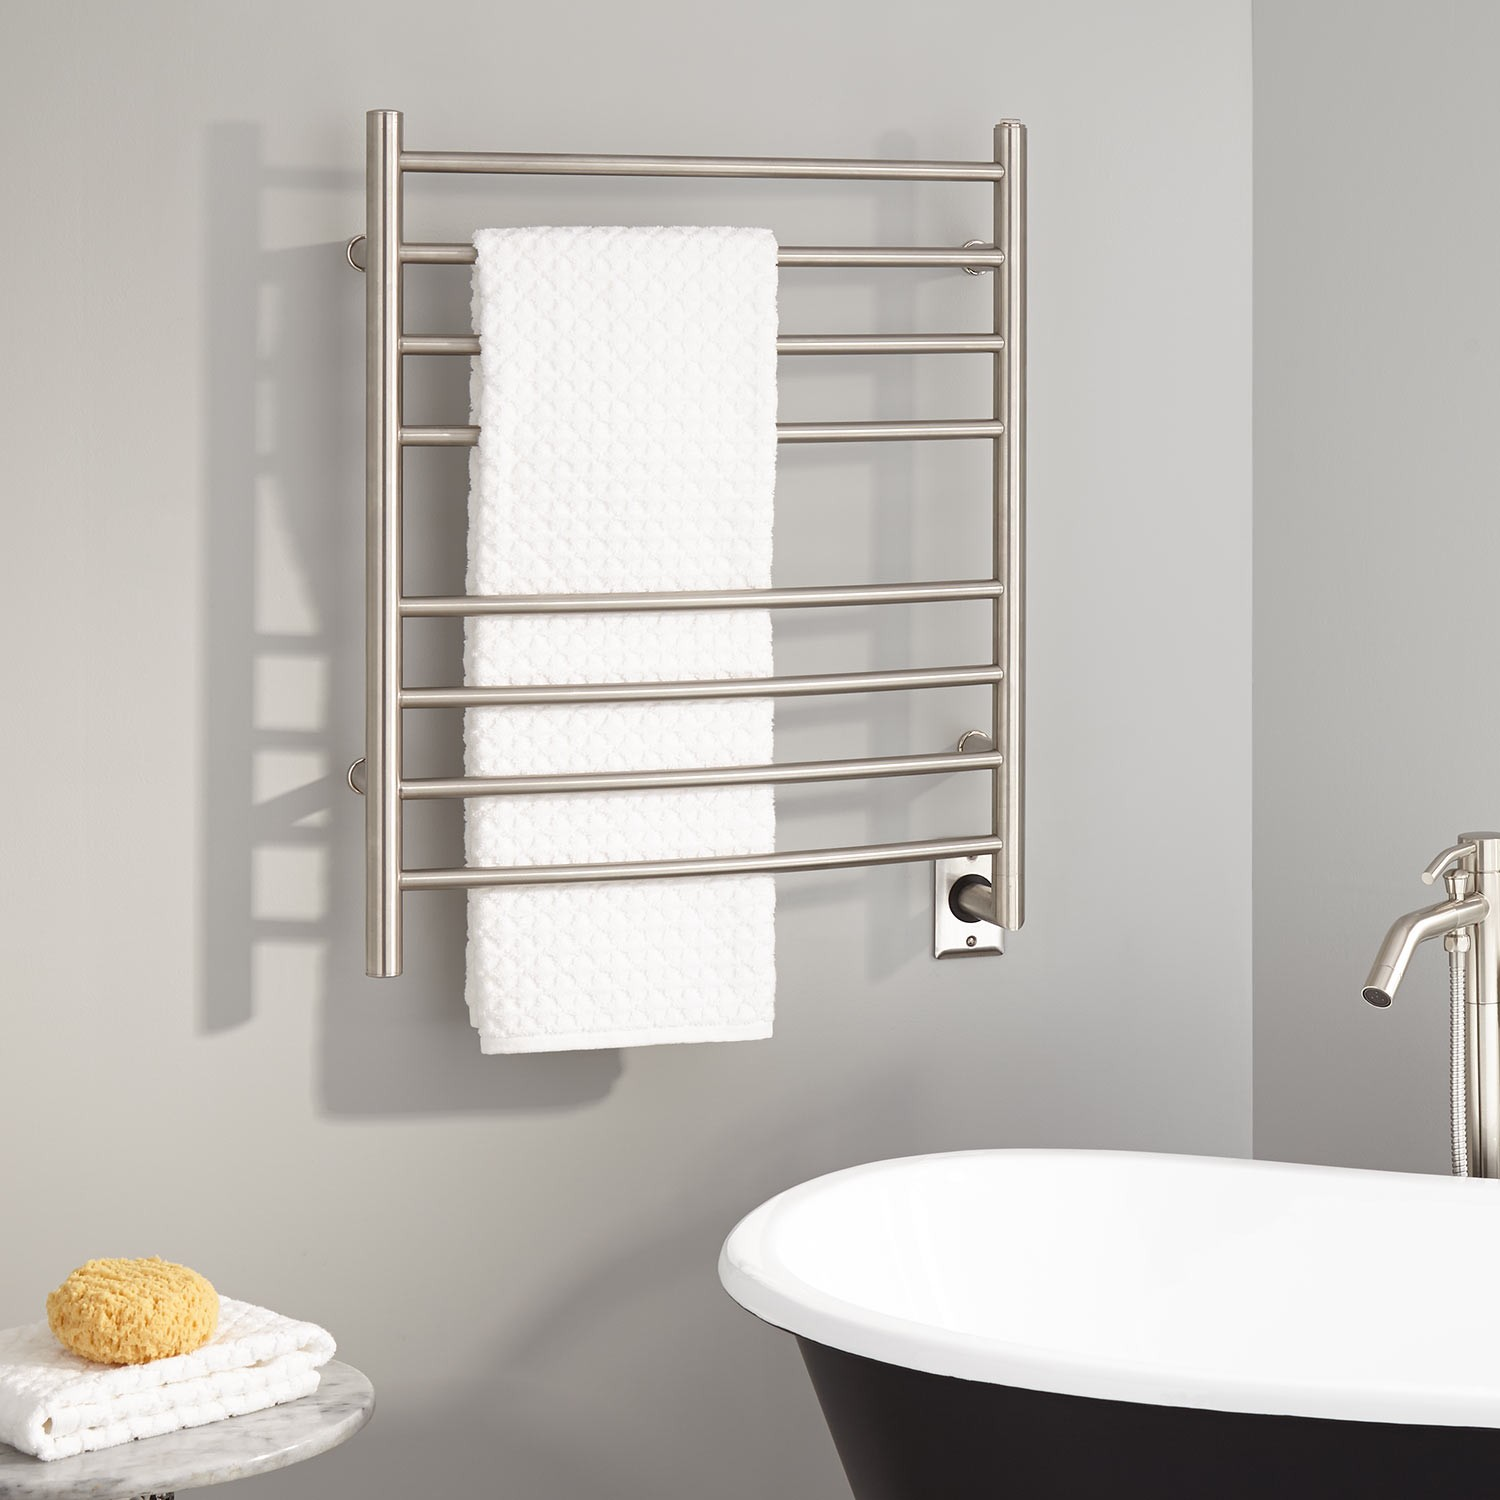 Towel Warmer in the bathroom from Tub Bathrooms Milton Keynes